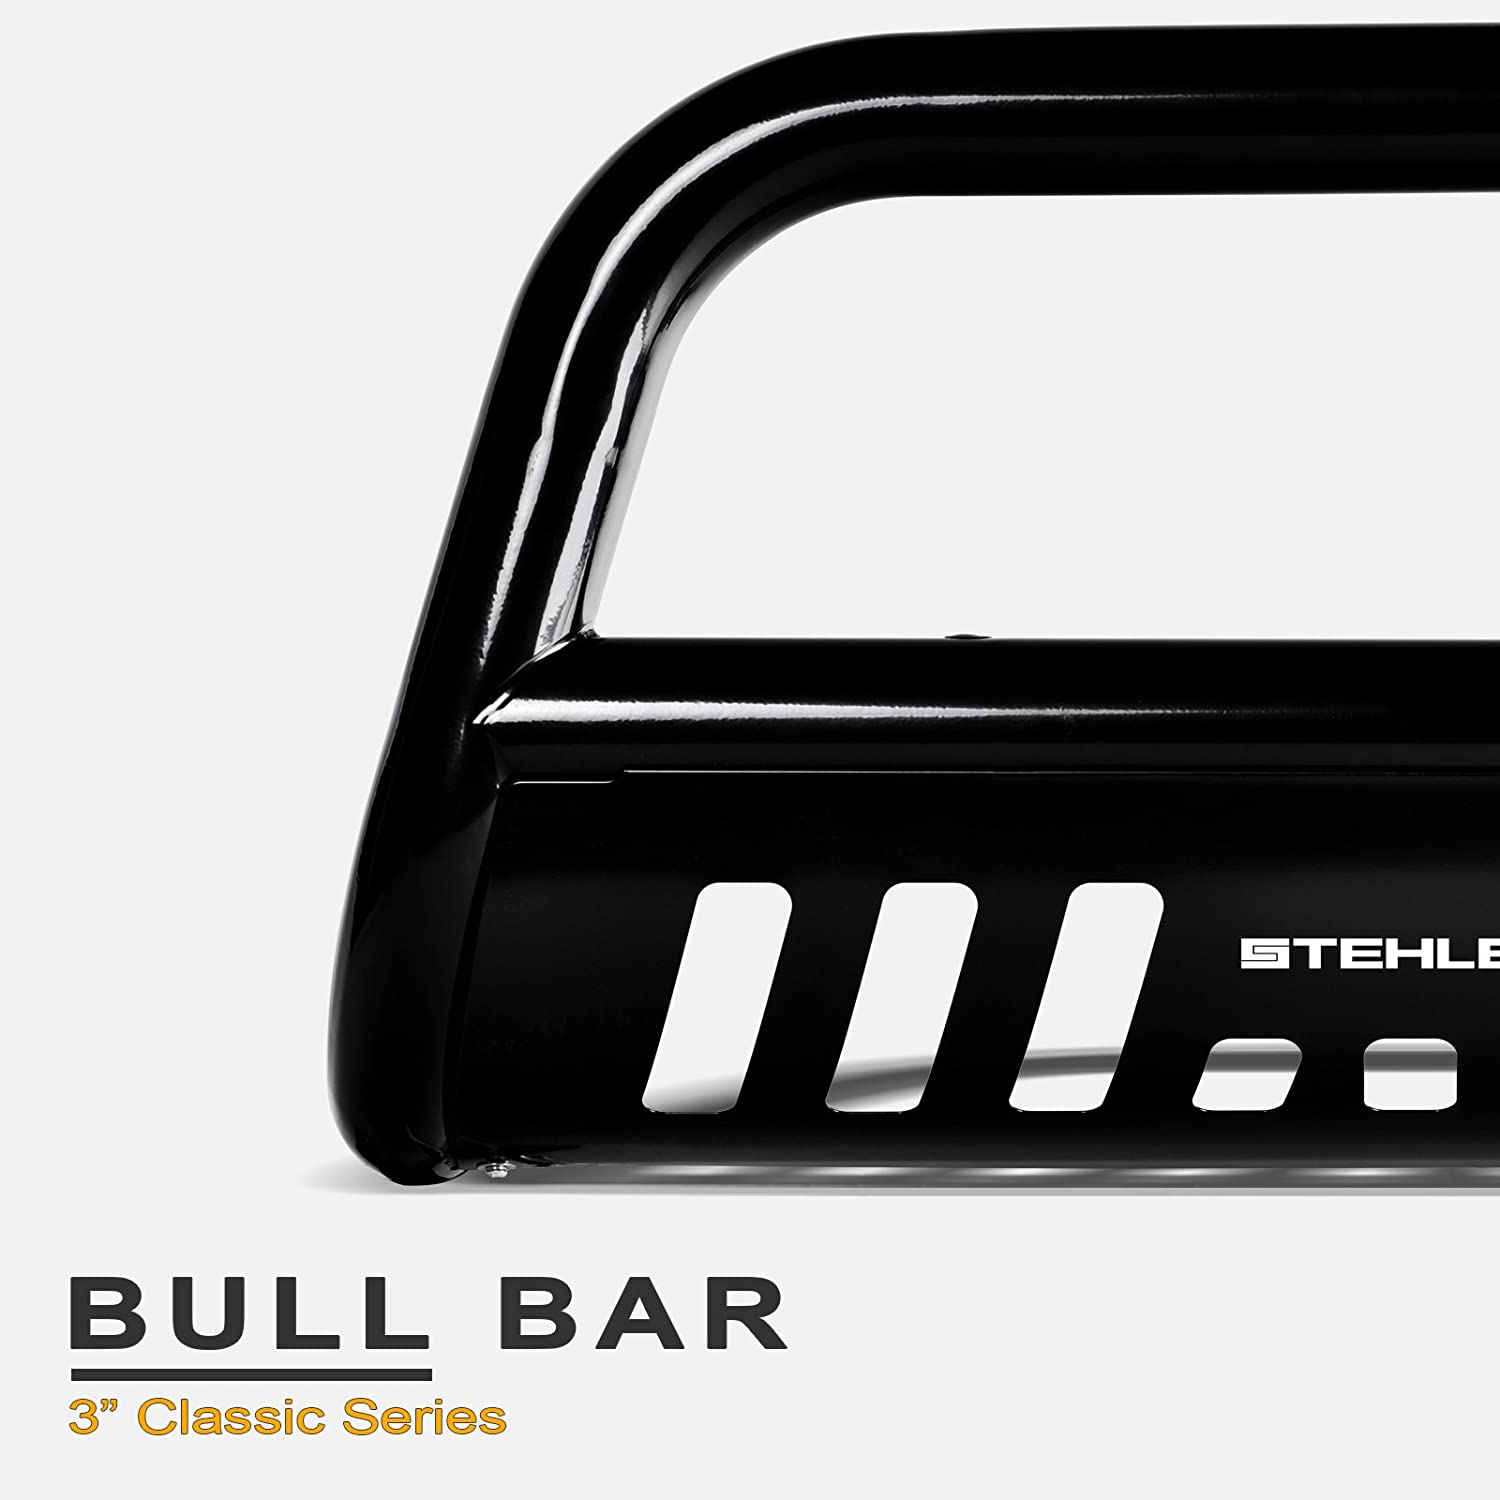 with 120W CREE LED Light Bar For 2007-2020 Toyota Tundra Stehlen 714937187986 3 Classic Series Bull Bar 2008-2020 Sequoia Black